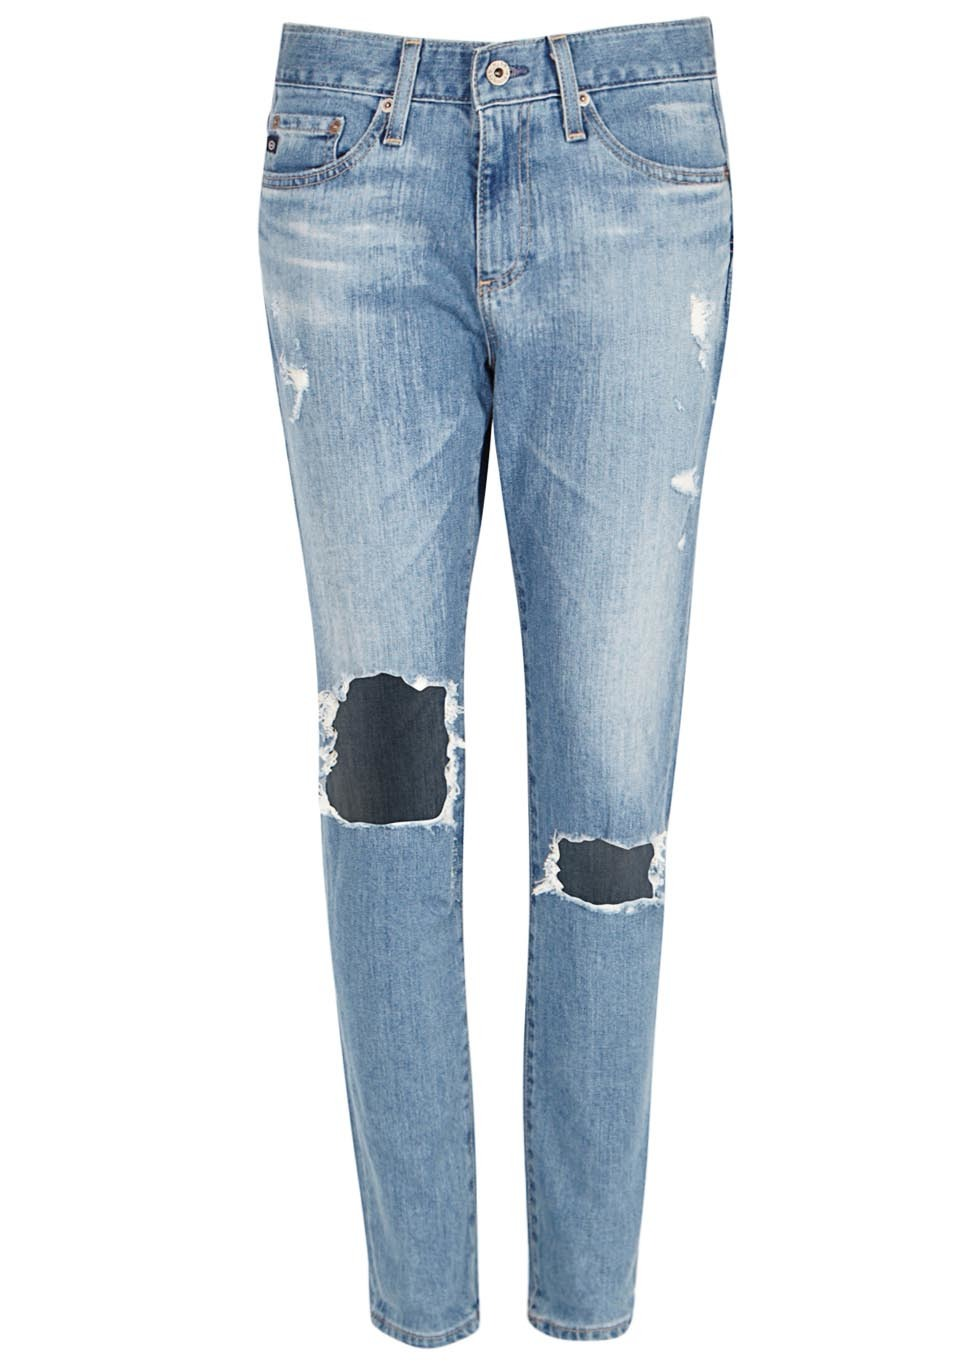 Beau Blue Distressed Slim Boyfriend Jeans - length: standard; pattern: plain; pocket detail: traditional 5 pocket; style: slim leg; waist: mid/regular rise; predominant colour: denim; occasions: casual; fibres: cotton - stretch; jeans detail: shading down centre of thigh, washed/faded, rips; texture group: denim; pattern type: fabric; season: a/w 2015; wardrobe: basic